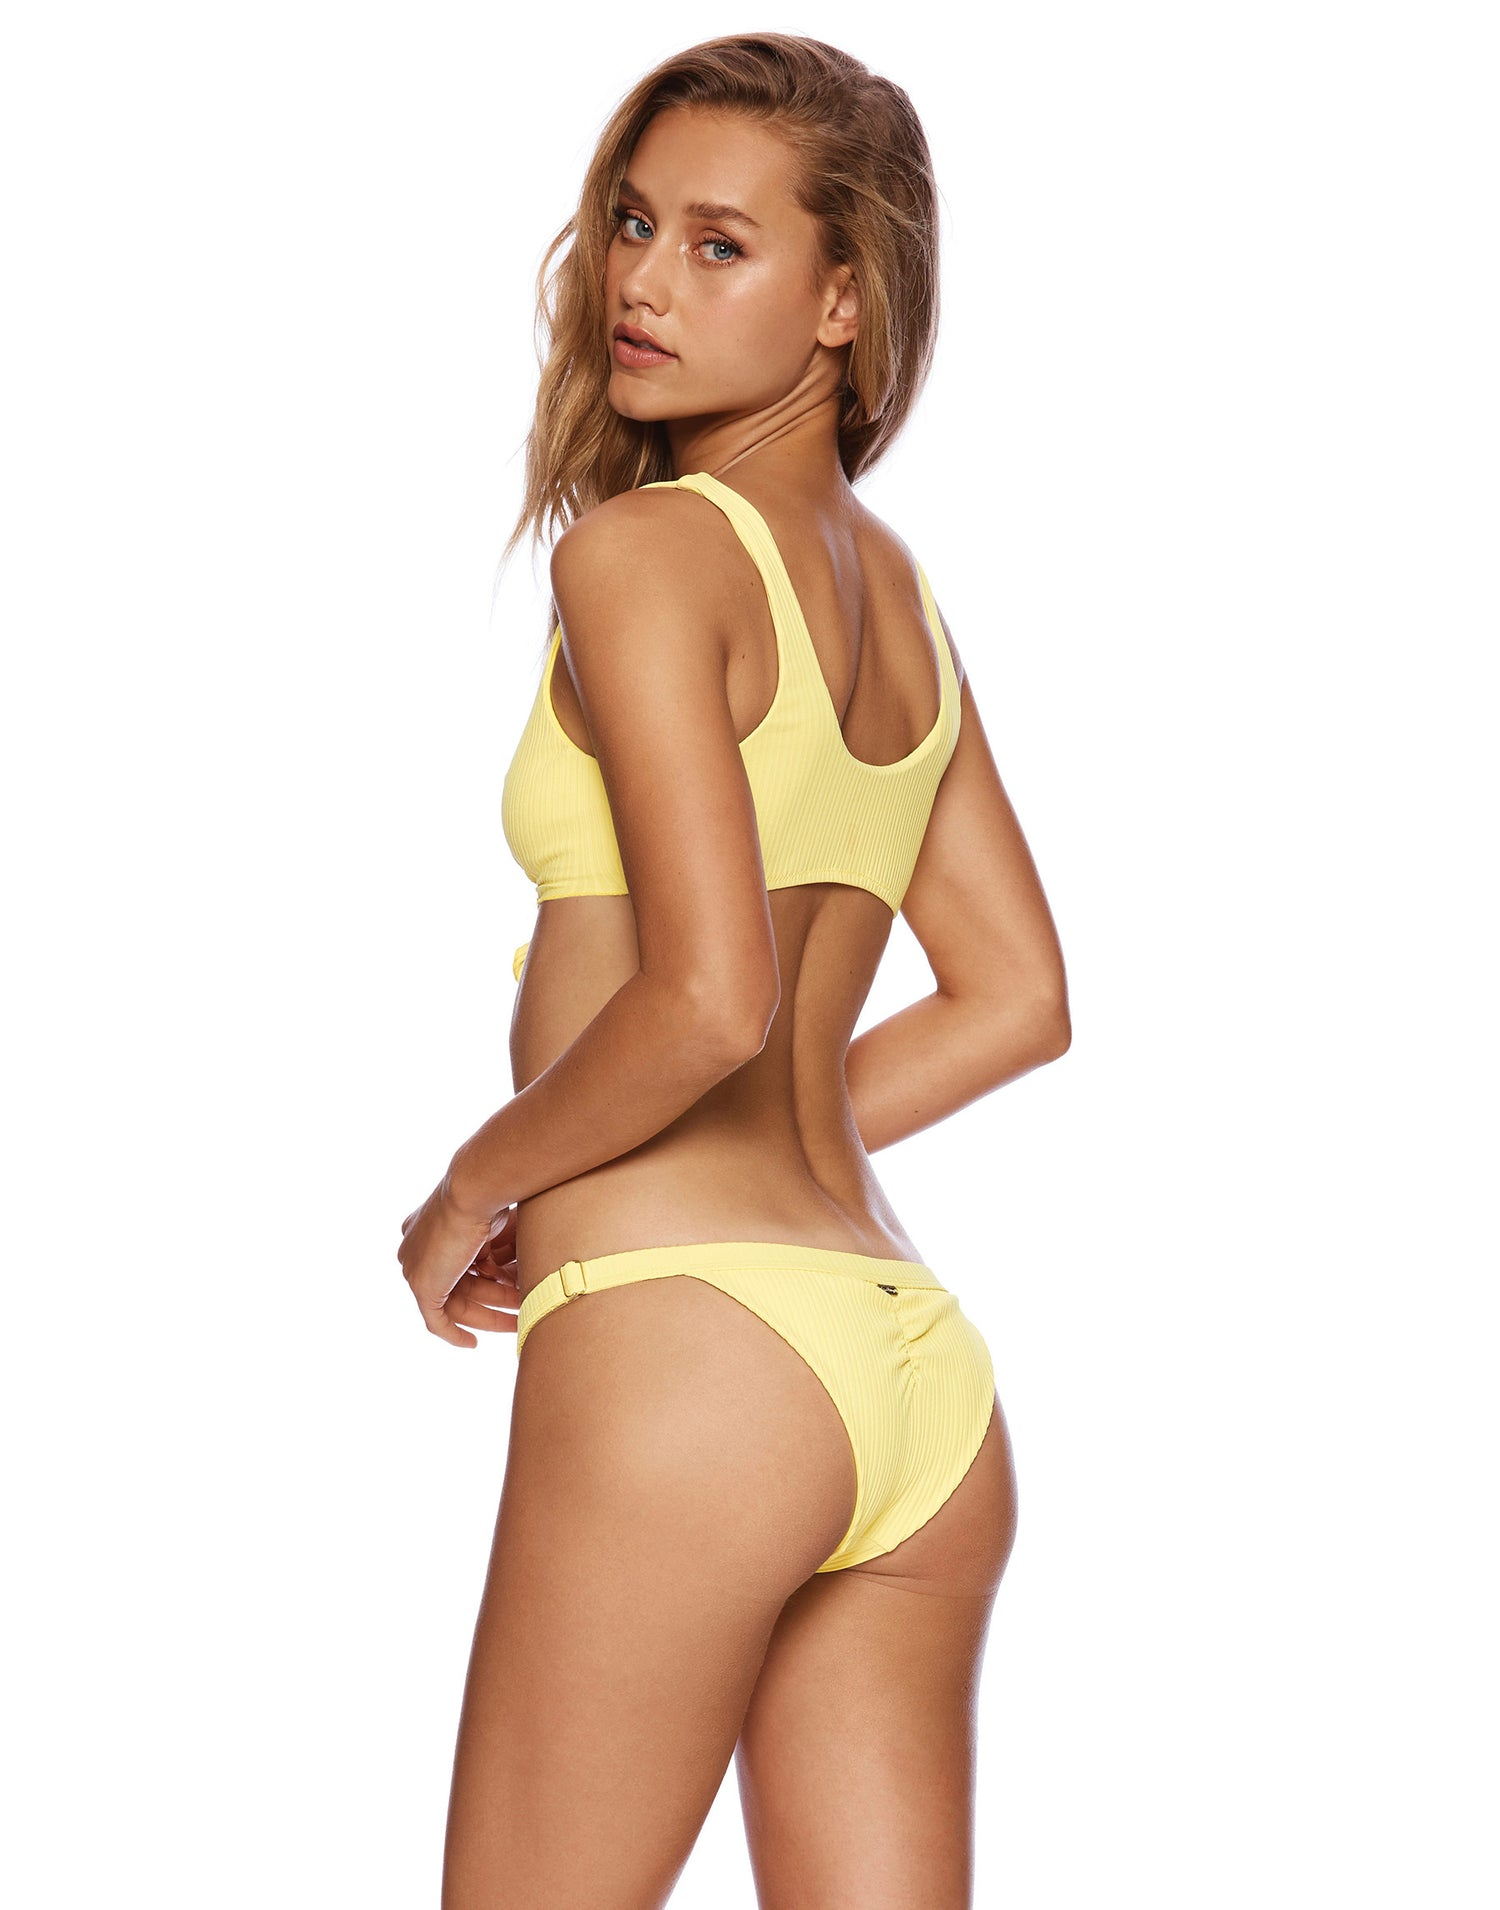 Presley Adjustable Skimpy Bikini Bottom in Lemon Yellow Rib - back view